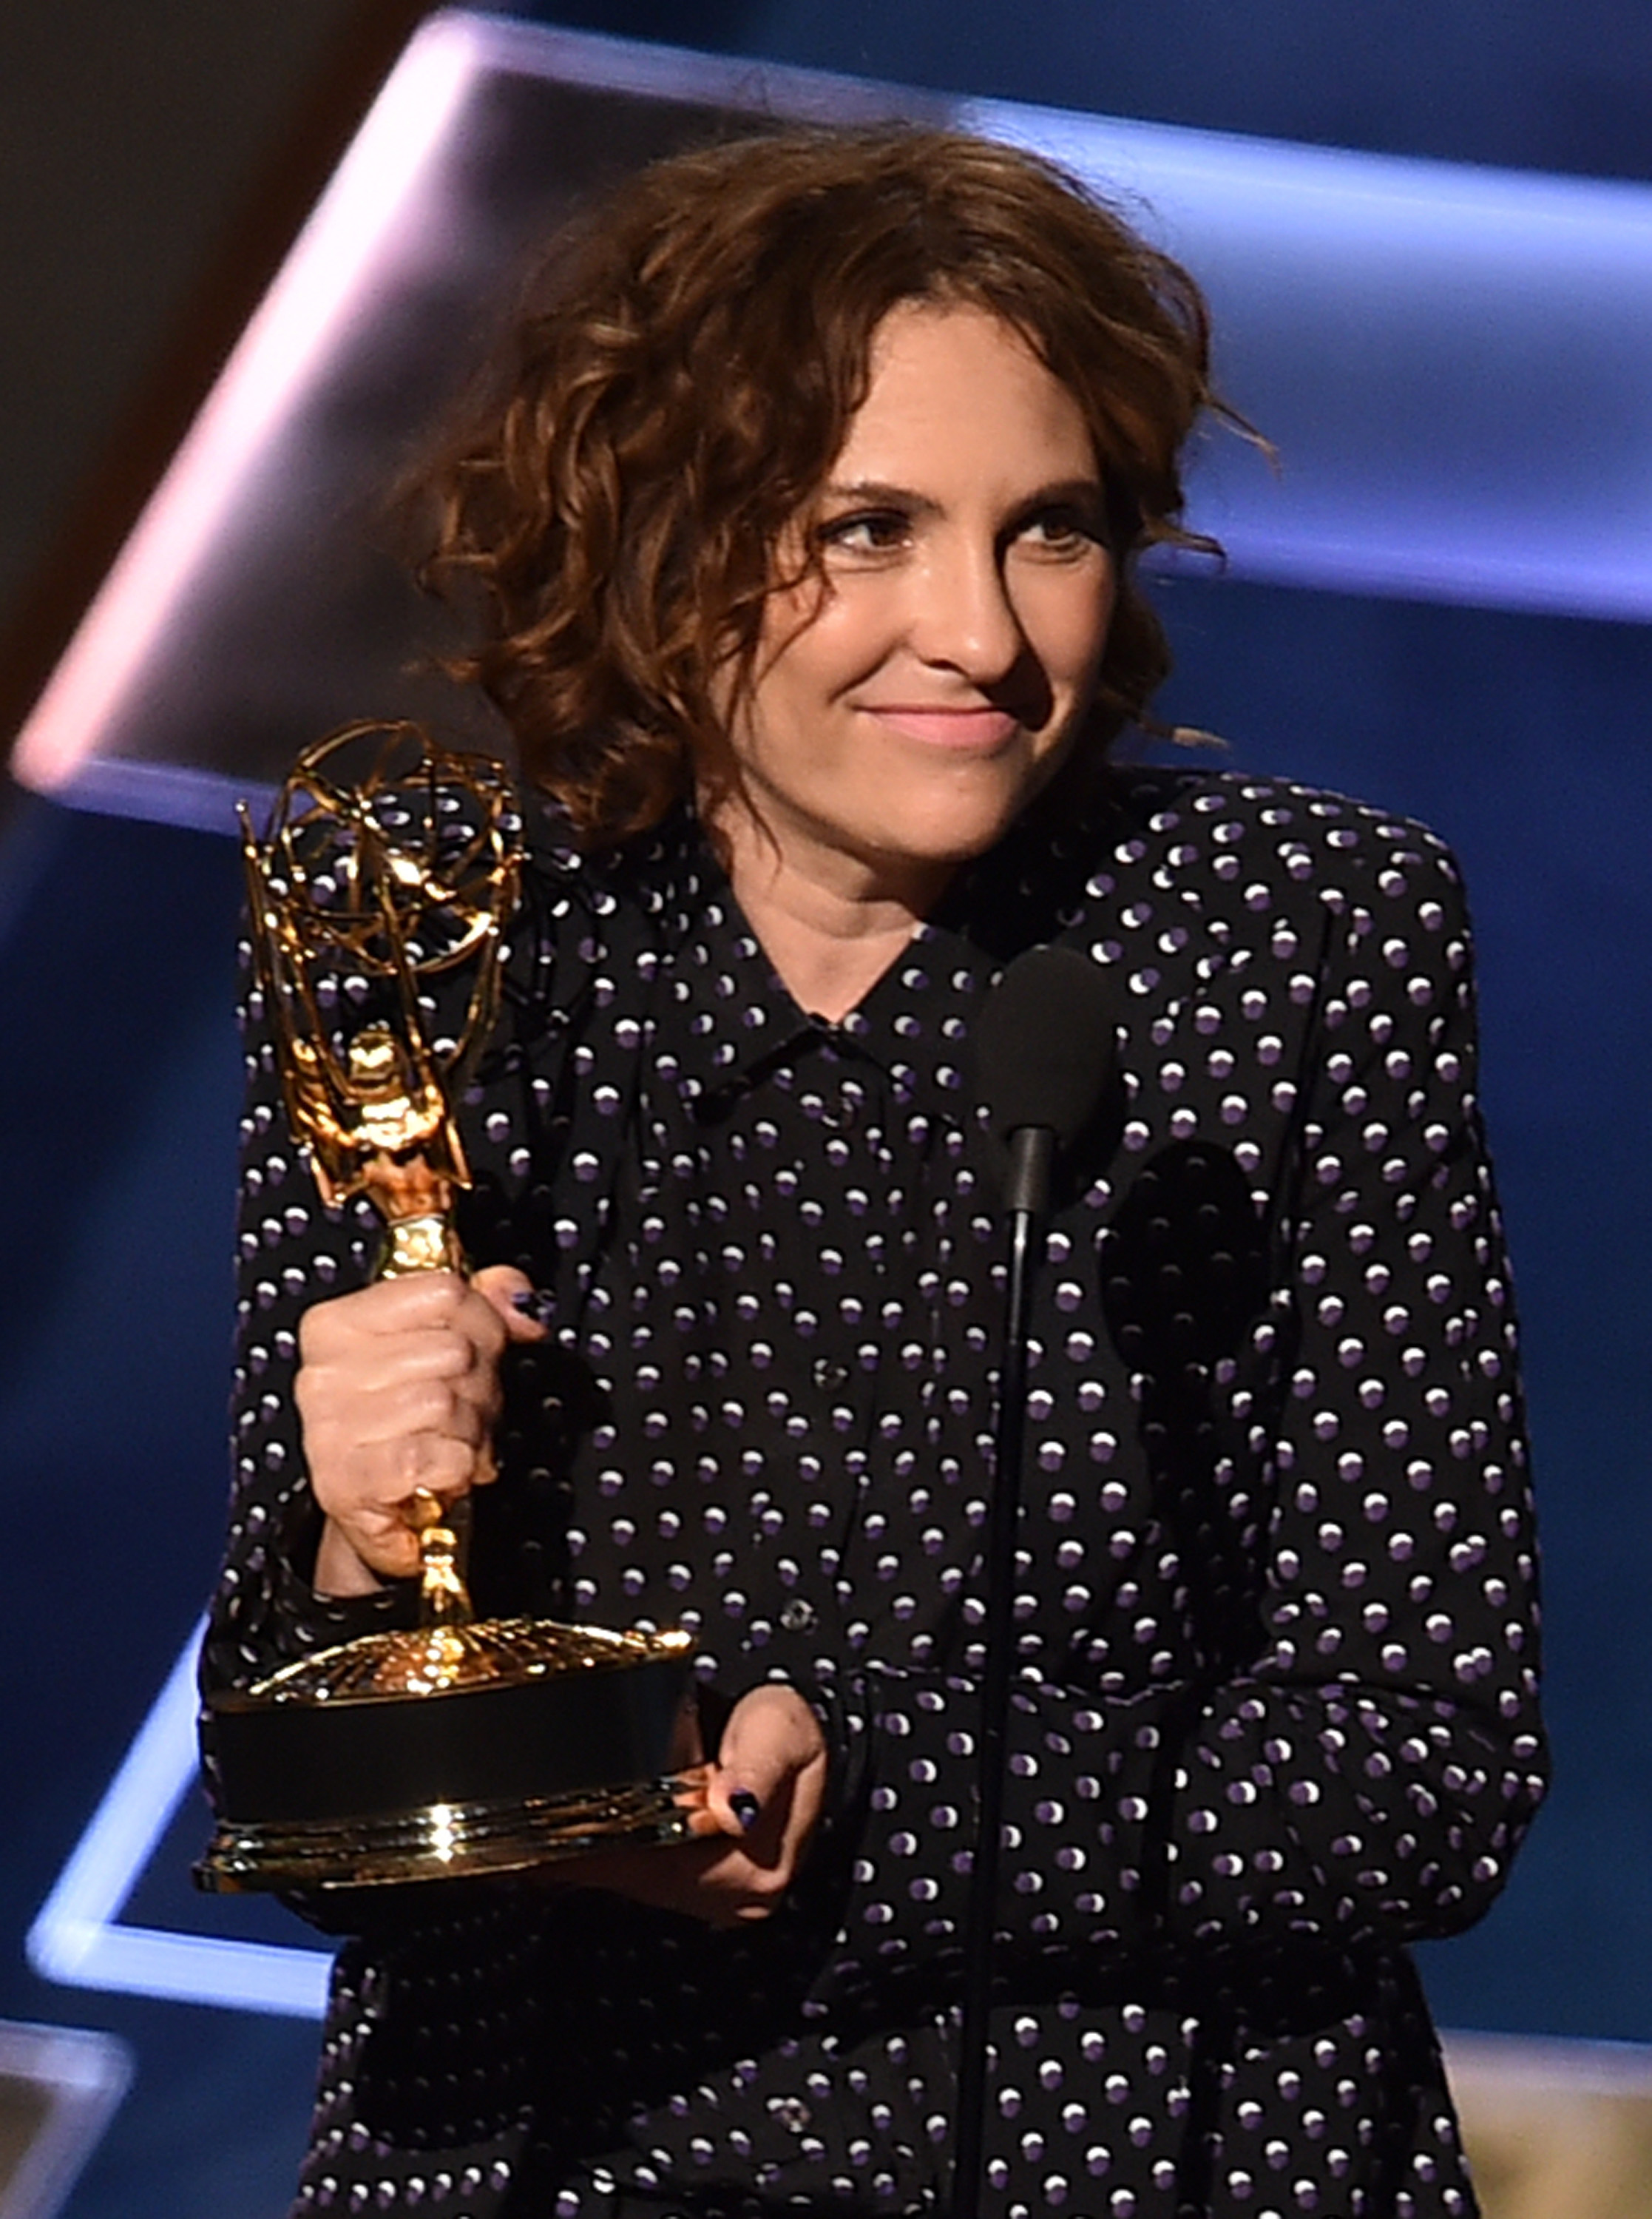 Jill Soloway accepts Outstanding Directing for a Comedy Series award for Transparent onstage during the 67th Annual Primetime Emmy Awards at Microsoft Theater on Sept. 20, 2015 in Los Angeles.